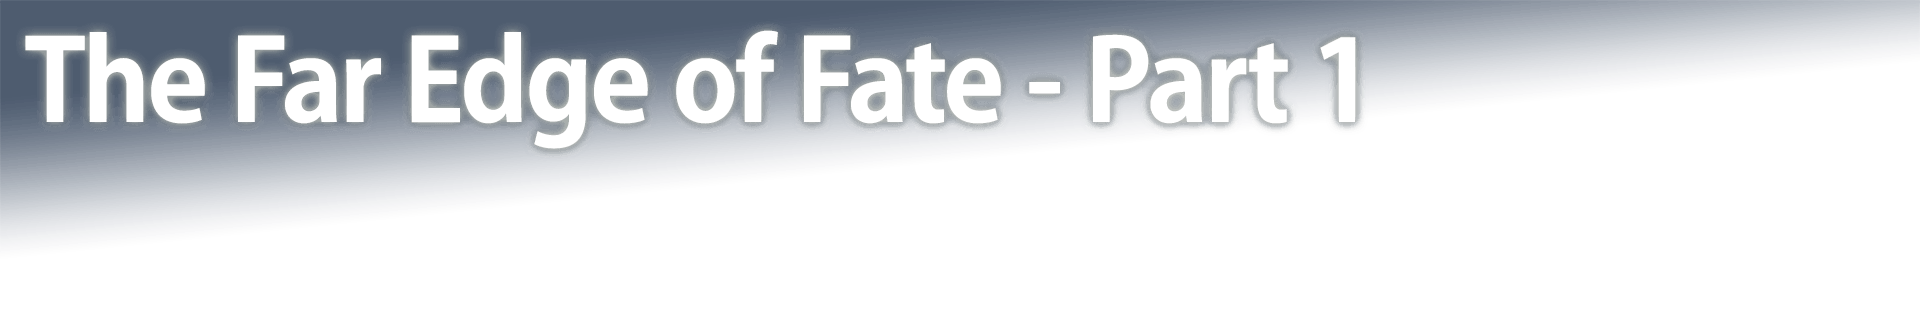 The Far Edge of Fate - Part 1